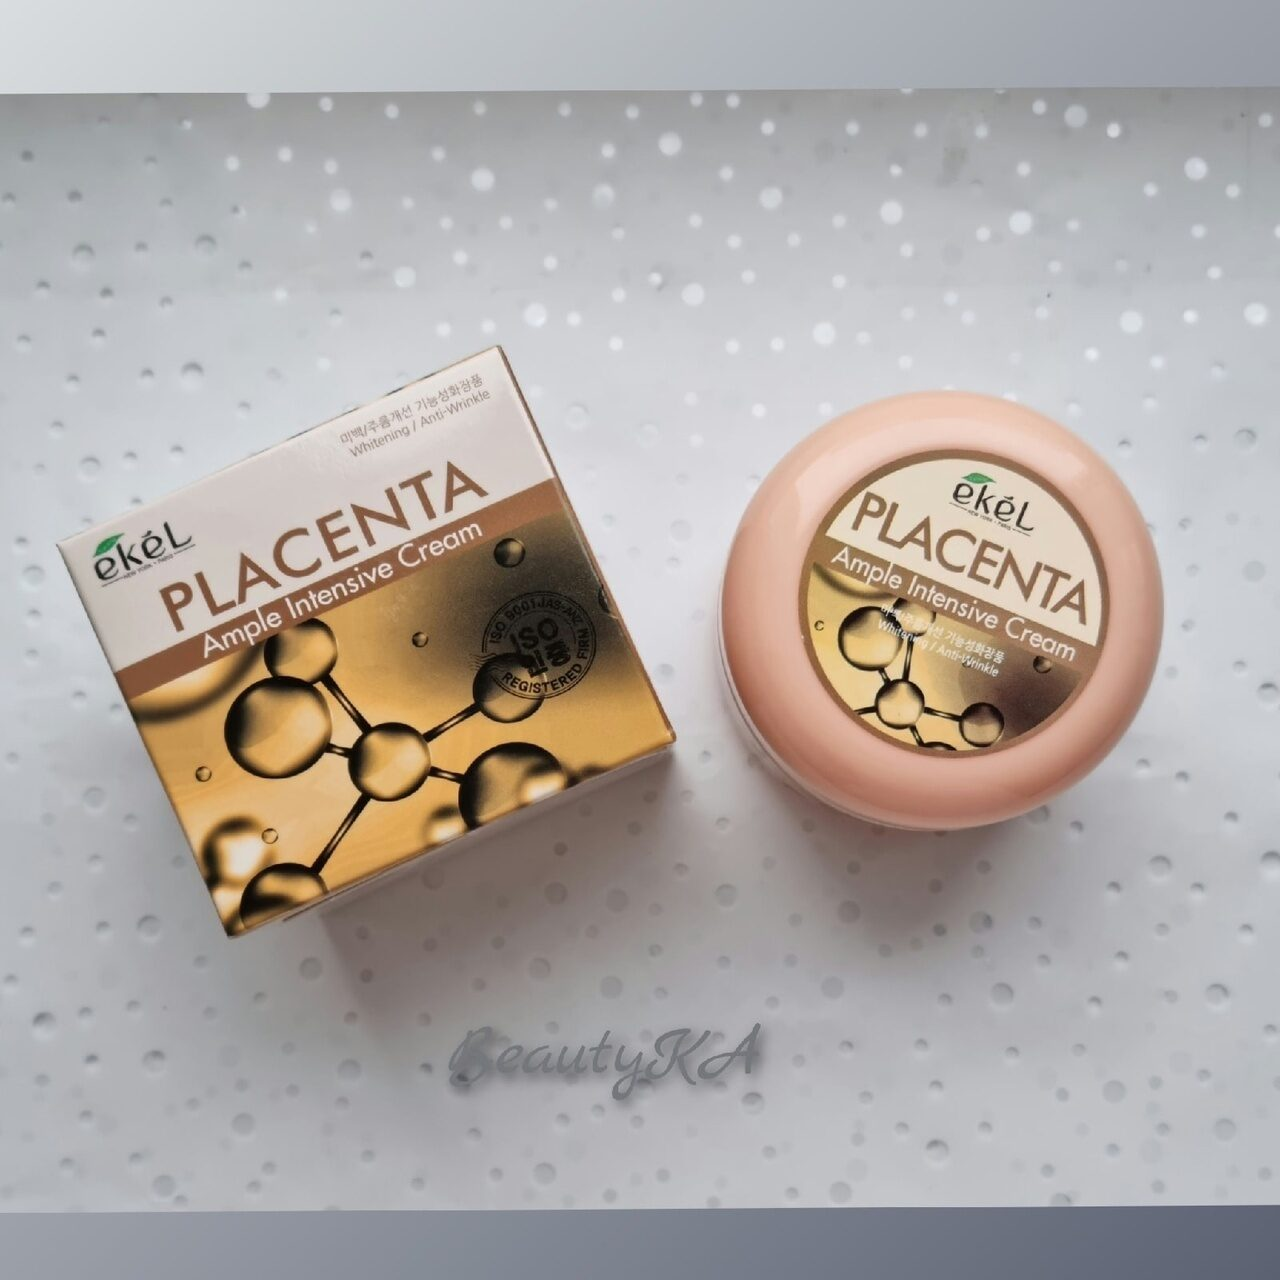 Крем для лица с плацентой Ekel Ample Intensive Cream Placenta